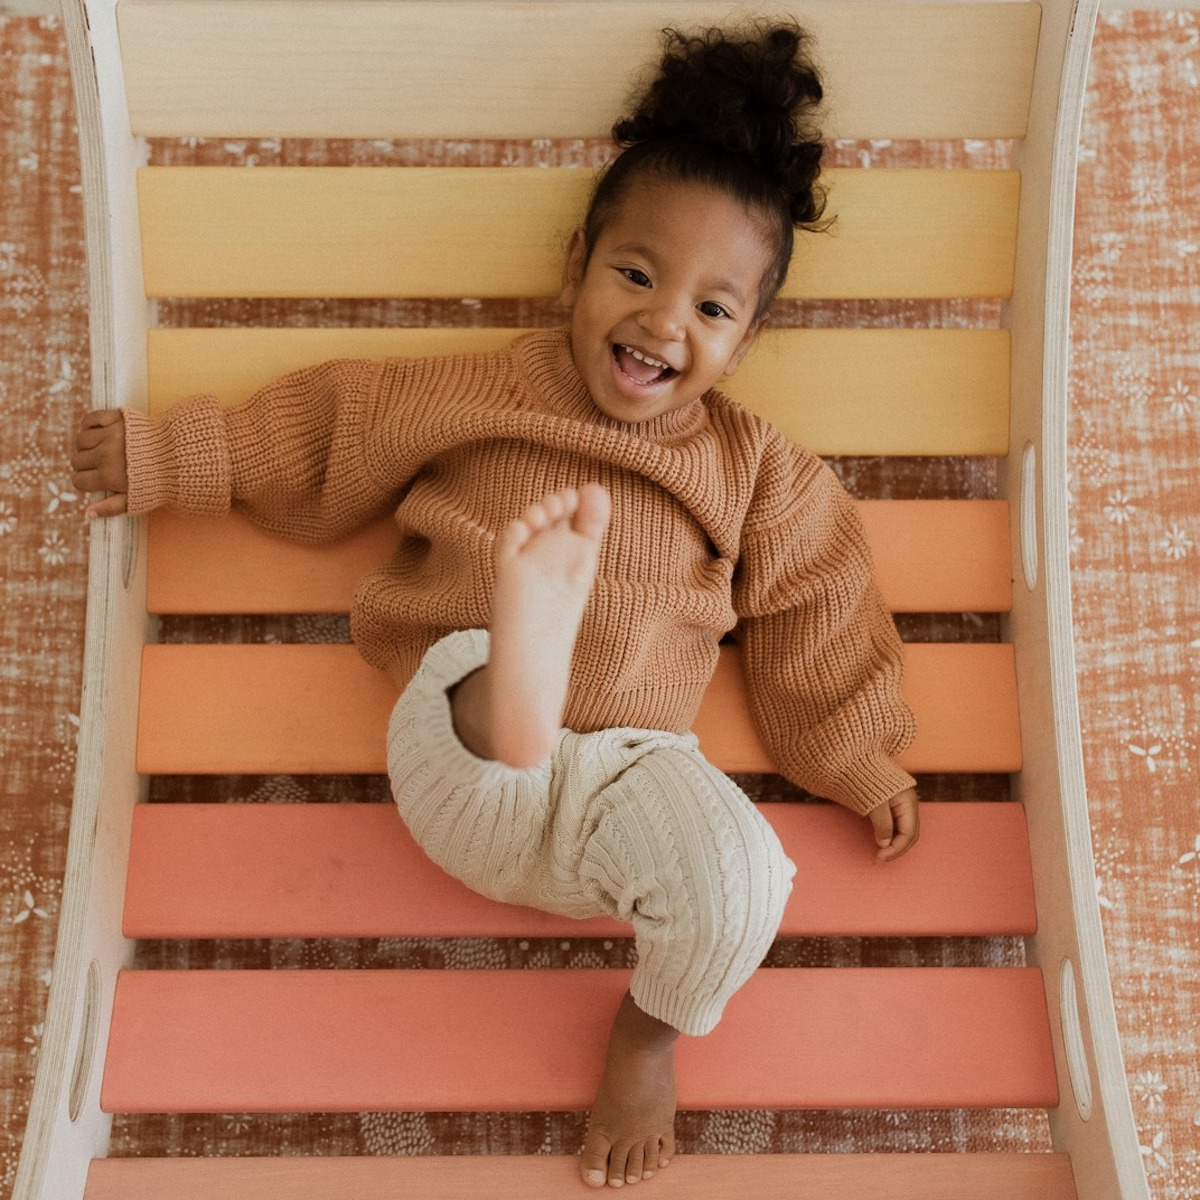 A little girl wearing a brown sweater and lying on a Wiwiurka climbing frame